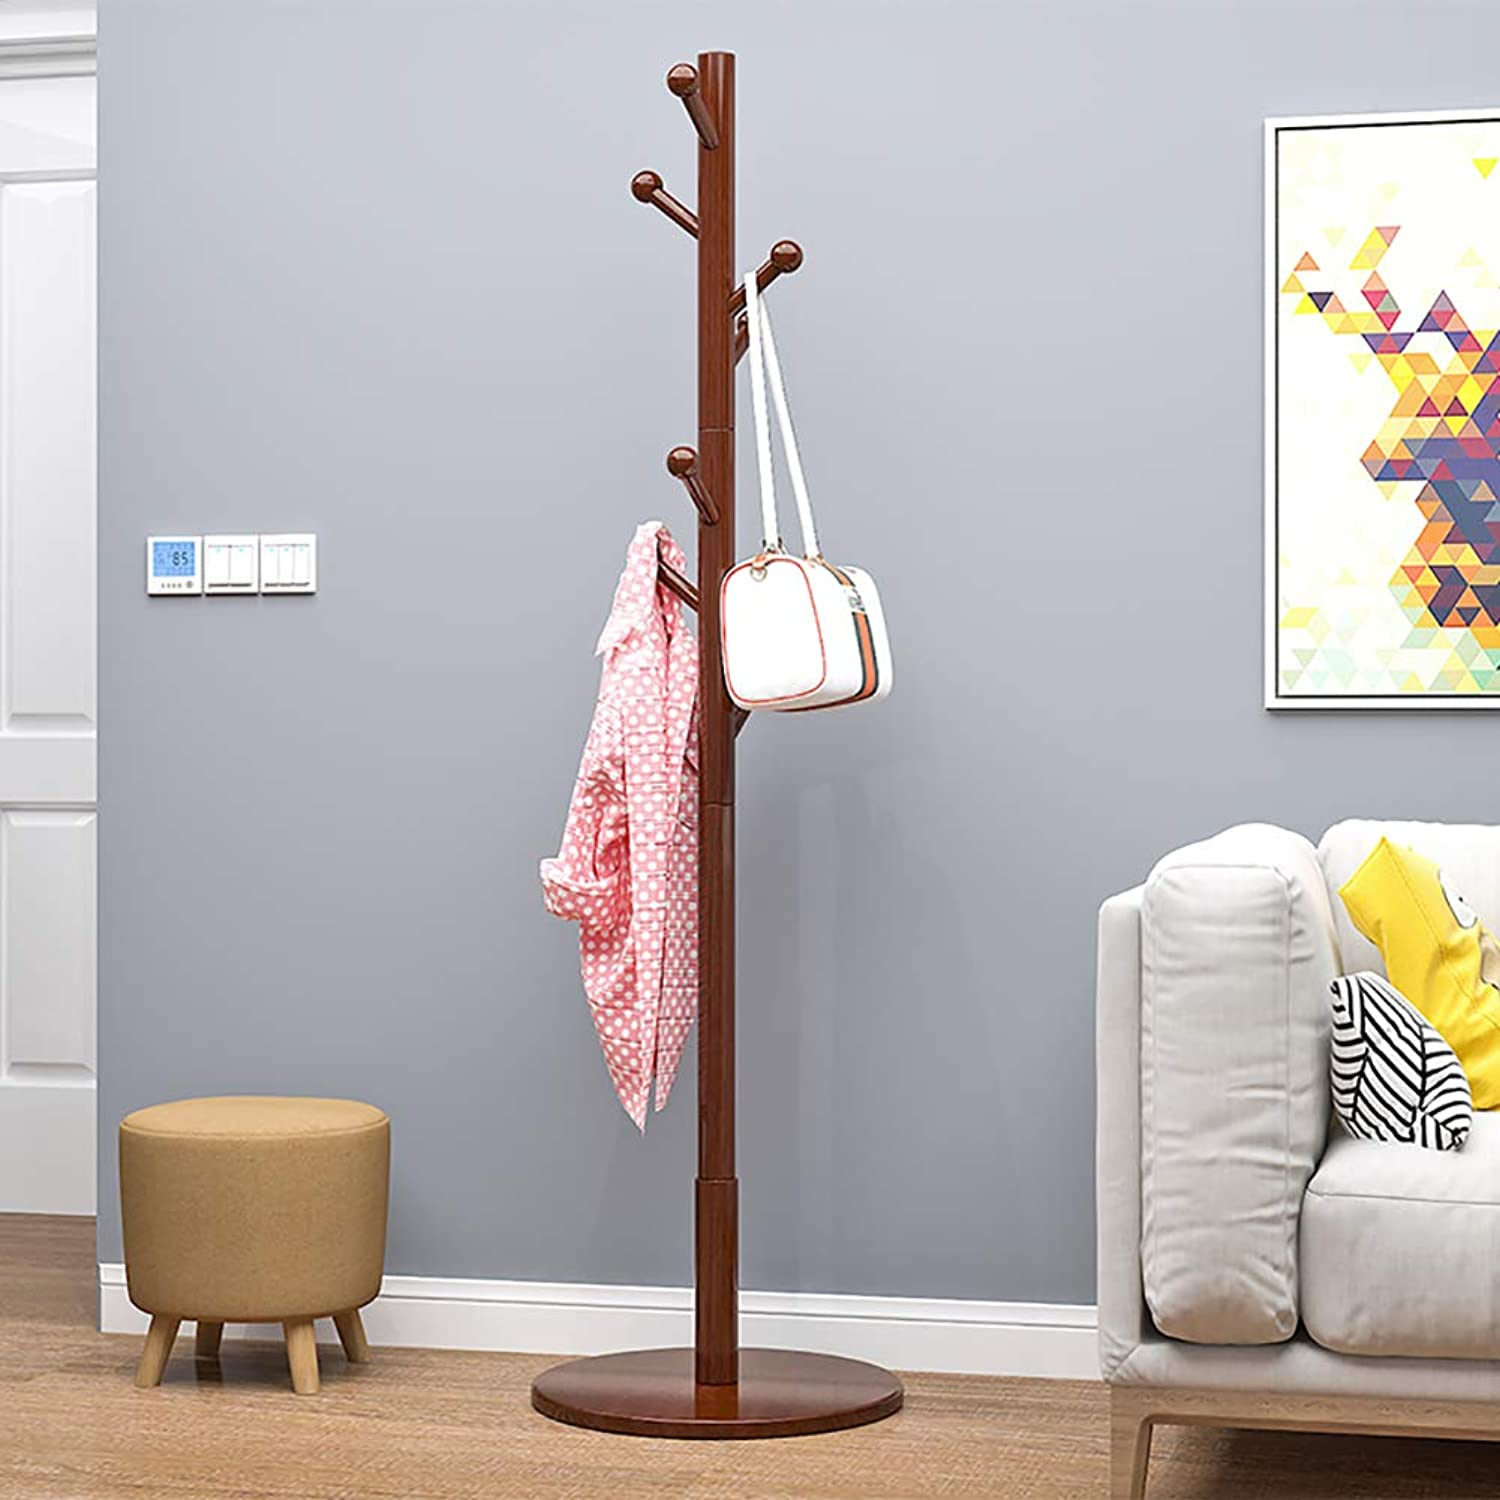 KTOL Multifunction Coat Hall Tree Free Standing, Modern Simple Coat Rack 8 Hooks Stable Floor Coat hat Holder for Office Hat Hanger Entryway-Brown Round Base